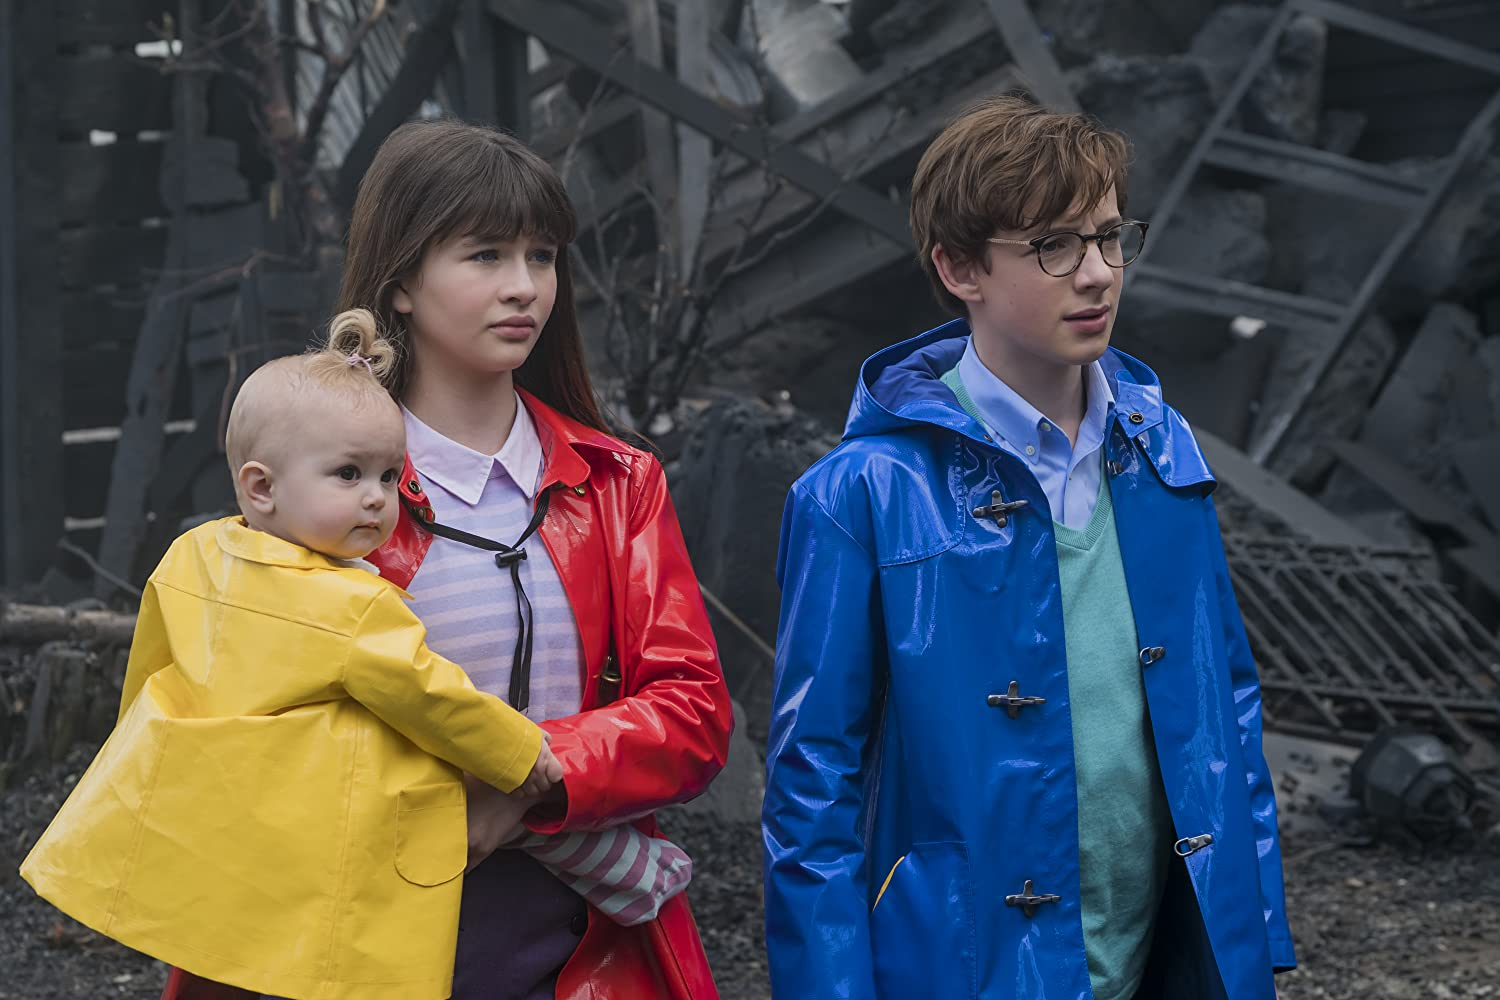 The Beaudelaire orphans A Series of Unfortunate Events